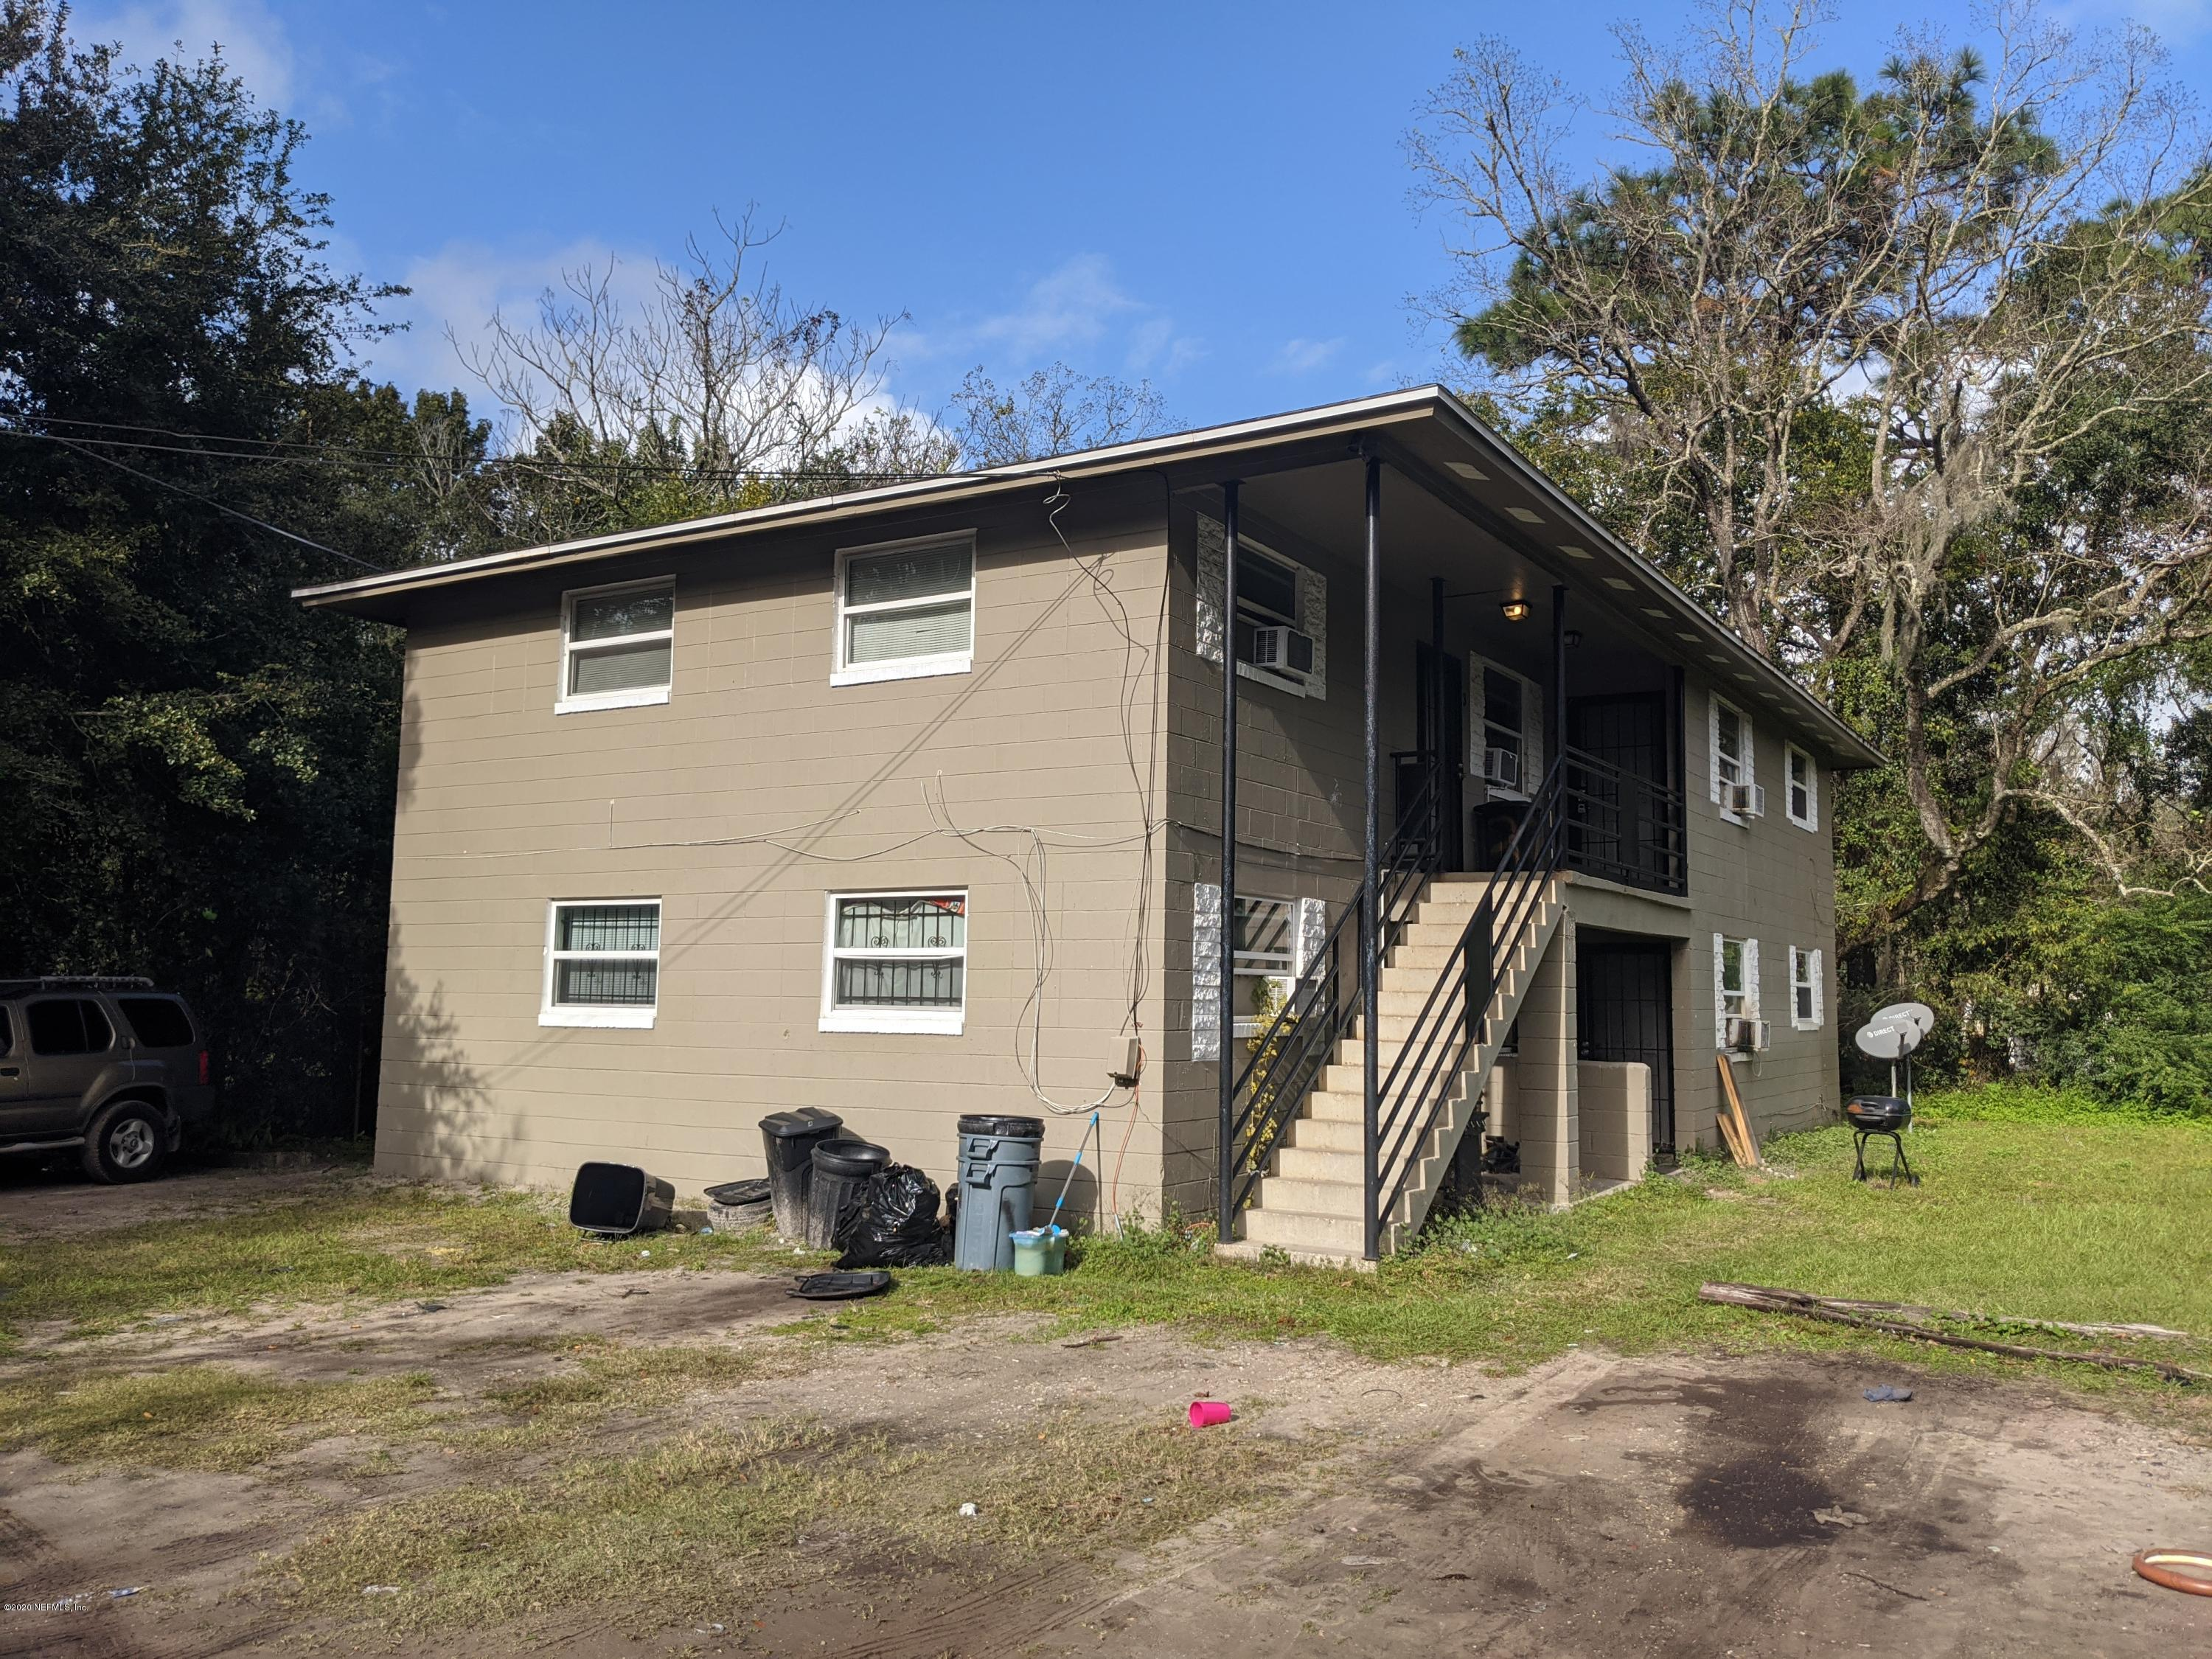 7929 SMART, JACKSONVILLE, FLORIDA 32219, 2 Bedrooms Bedrooms, ,1 BathroomBathrooms,Rental,For Rent,SMART,1083016